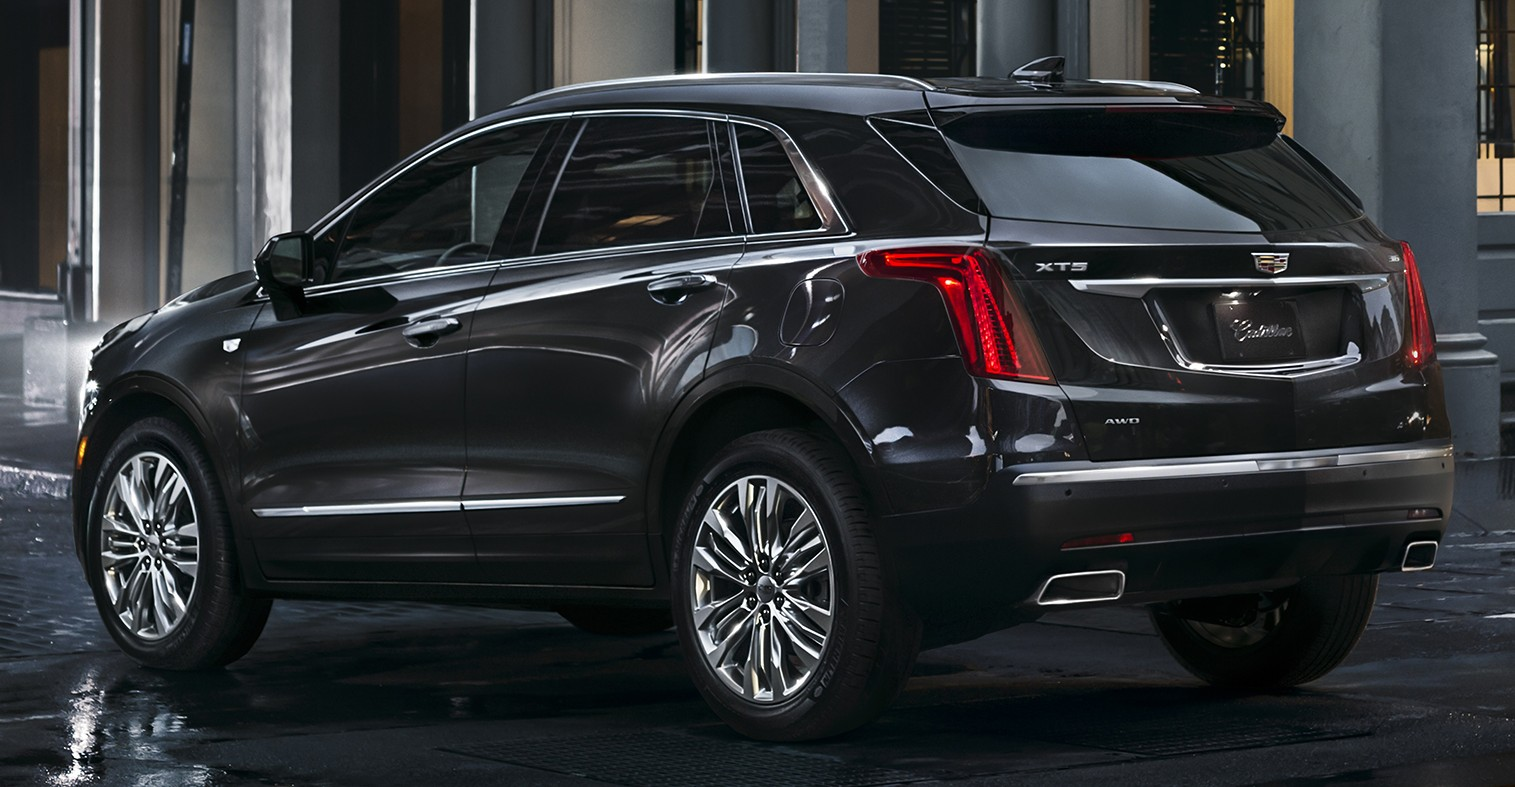 la 2015 cadillac xt5 officially revealed prior to debut image 405448. Black Bedroom Furniture Sets. Home Design Ideas